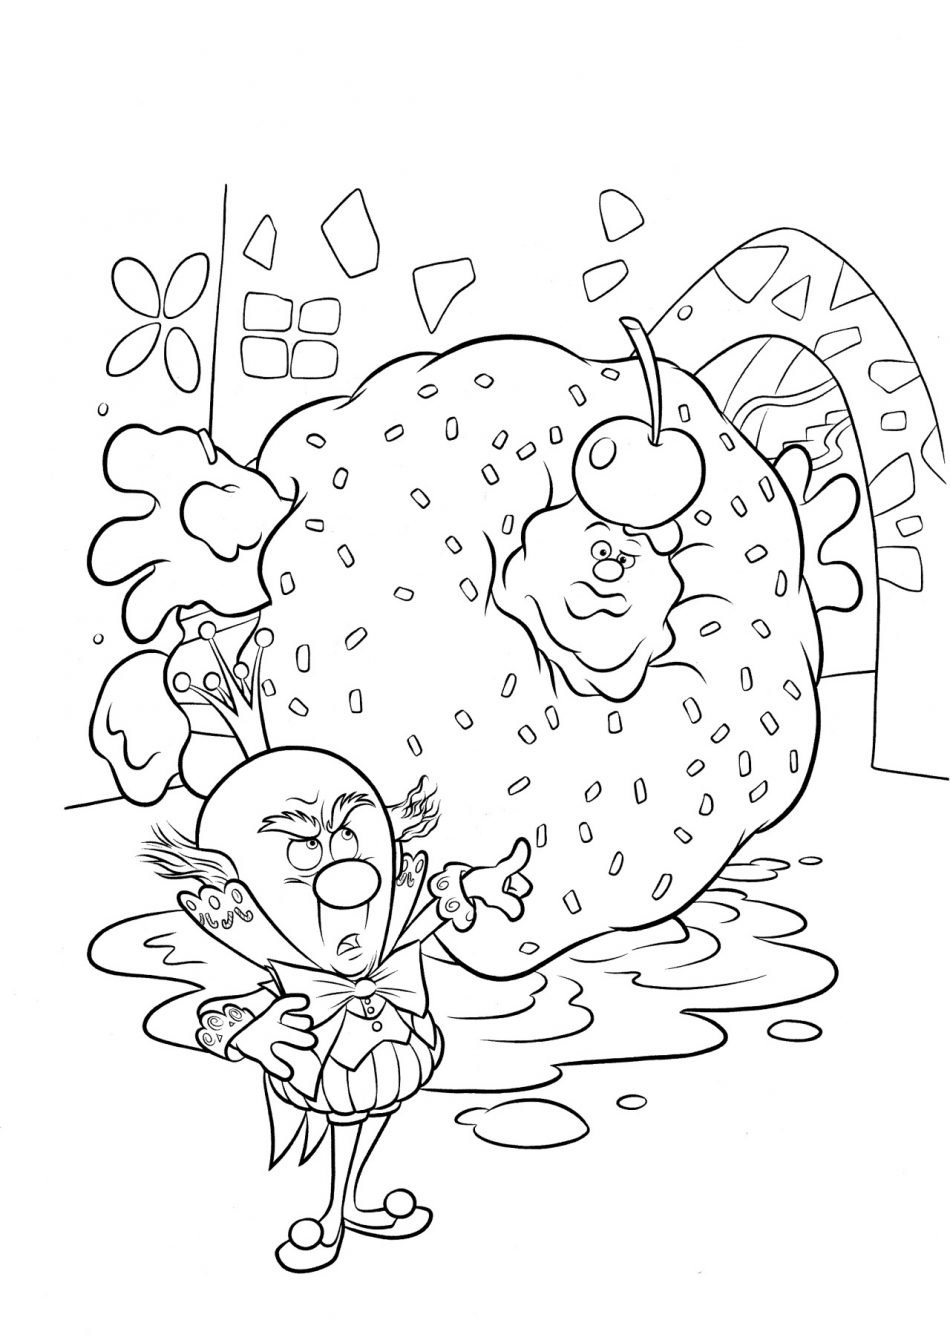 Disney Ralph and King Candy Coloring Page